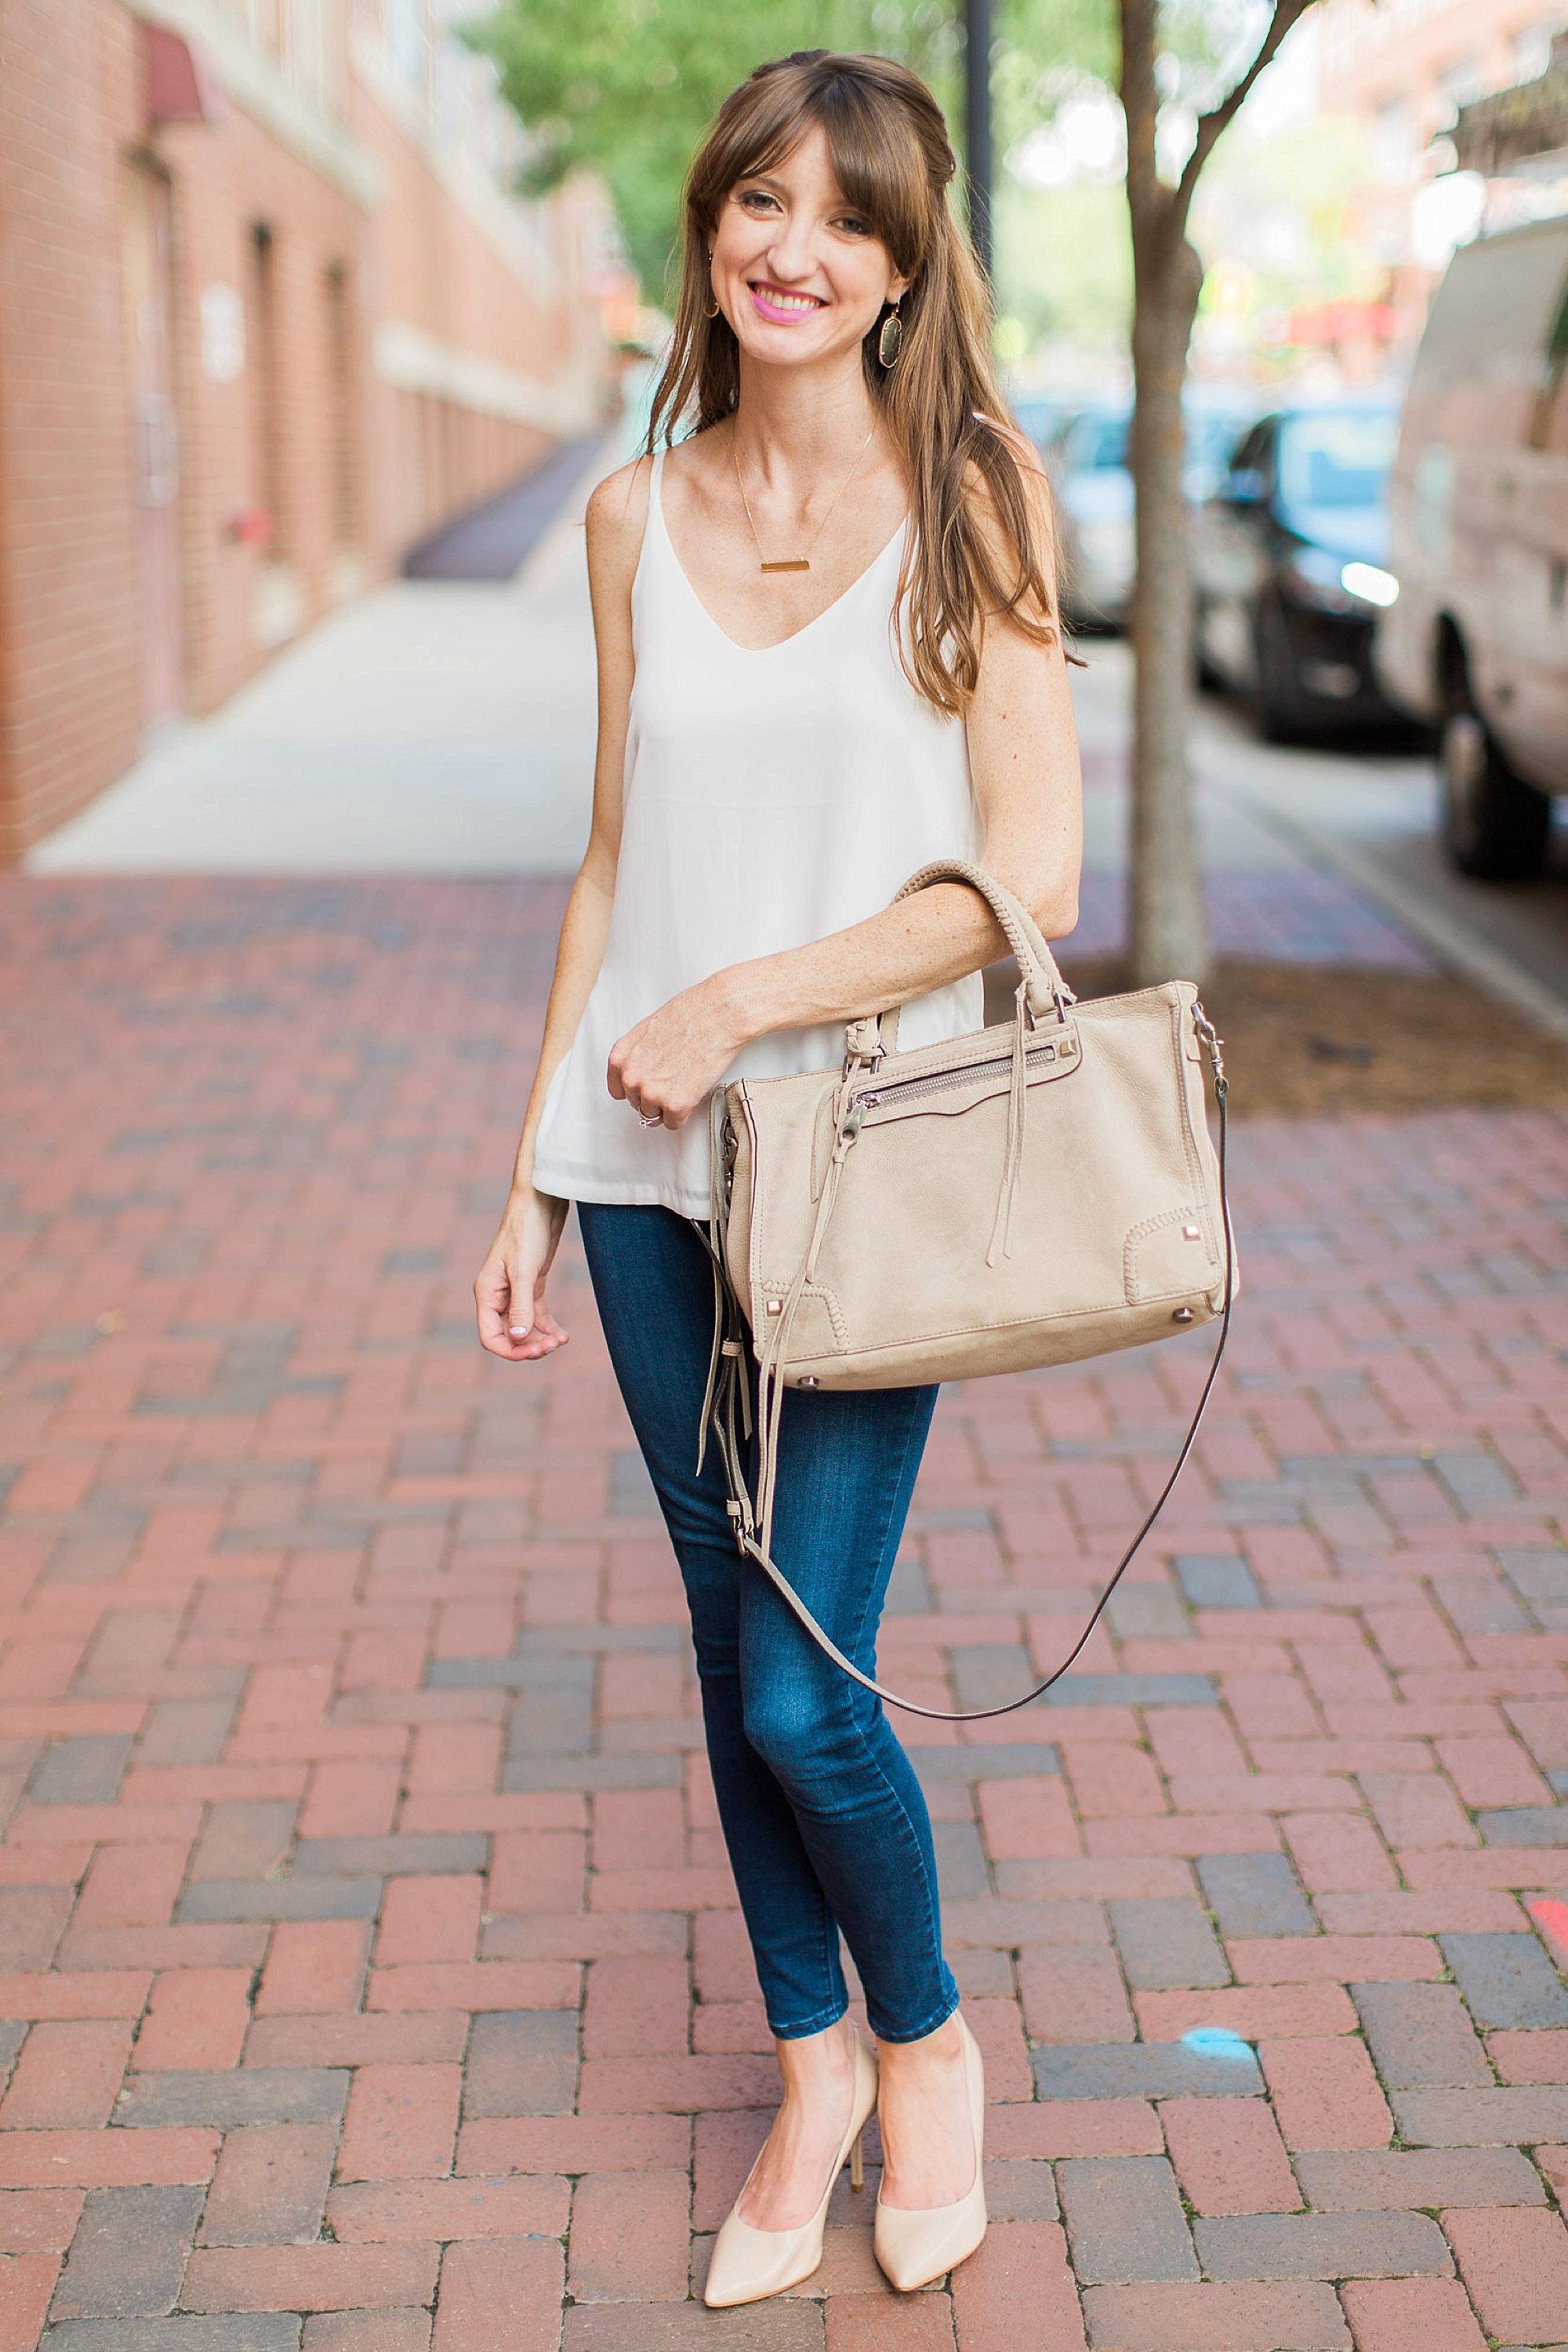 CAMI:   H&M  (also love   this one  ); JEANS:   Levi's  ; SHOES:   Steve Madden   (on sale!); EARRINGS:   Kendra Scott  ; NECKLACE:   Baublebar  ; PURSE:   Rebecca Minkoff